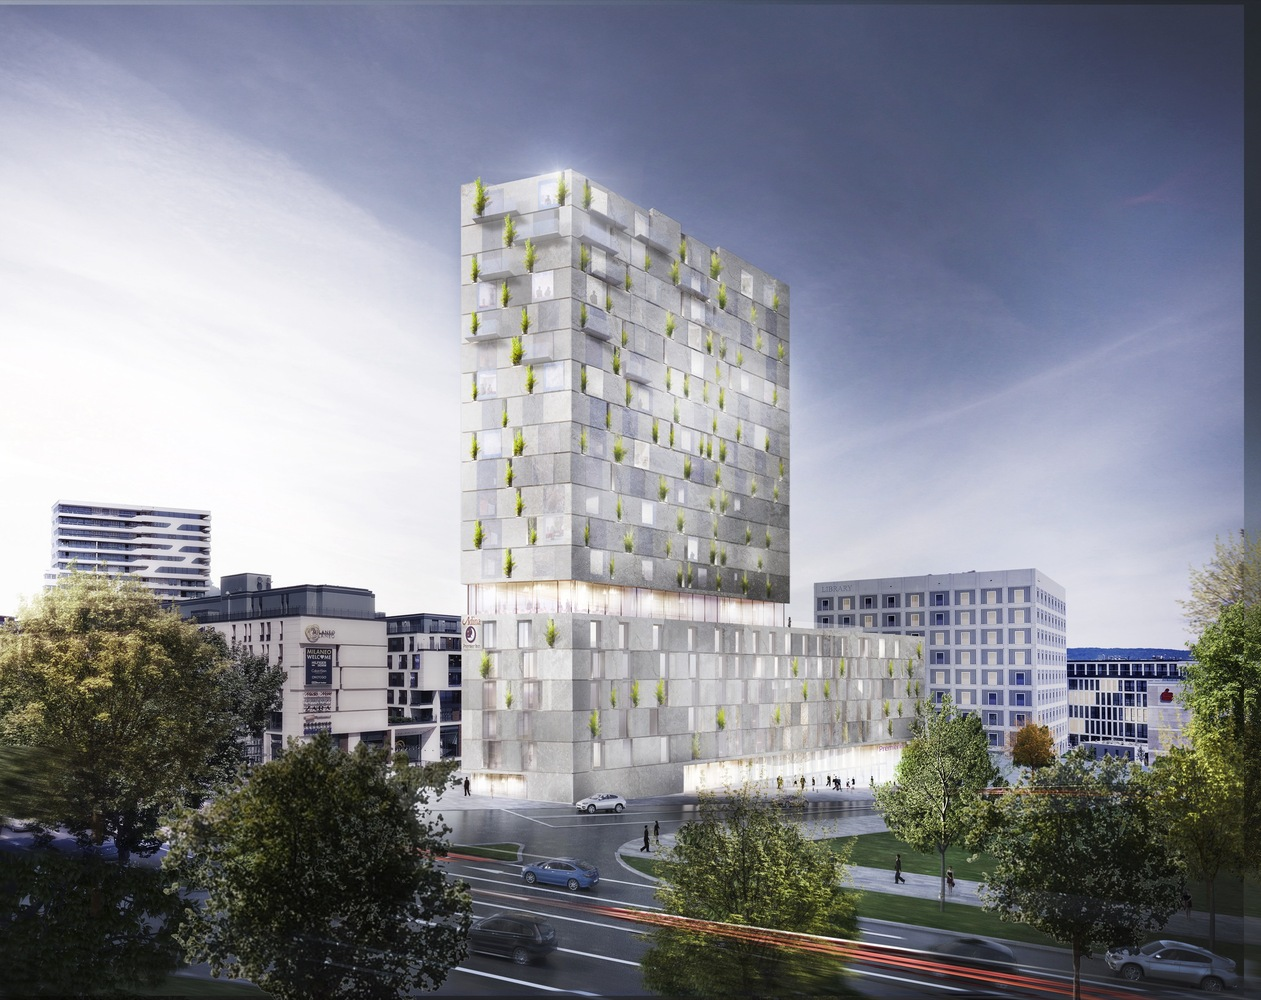 Architektur Rendering Gallery Of Rkw Architektur + Wins Competition For Stone-clad Mixed-use Building In Stuttgart - 1